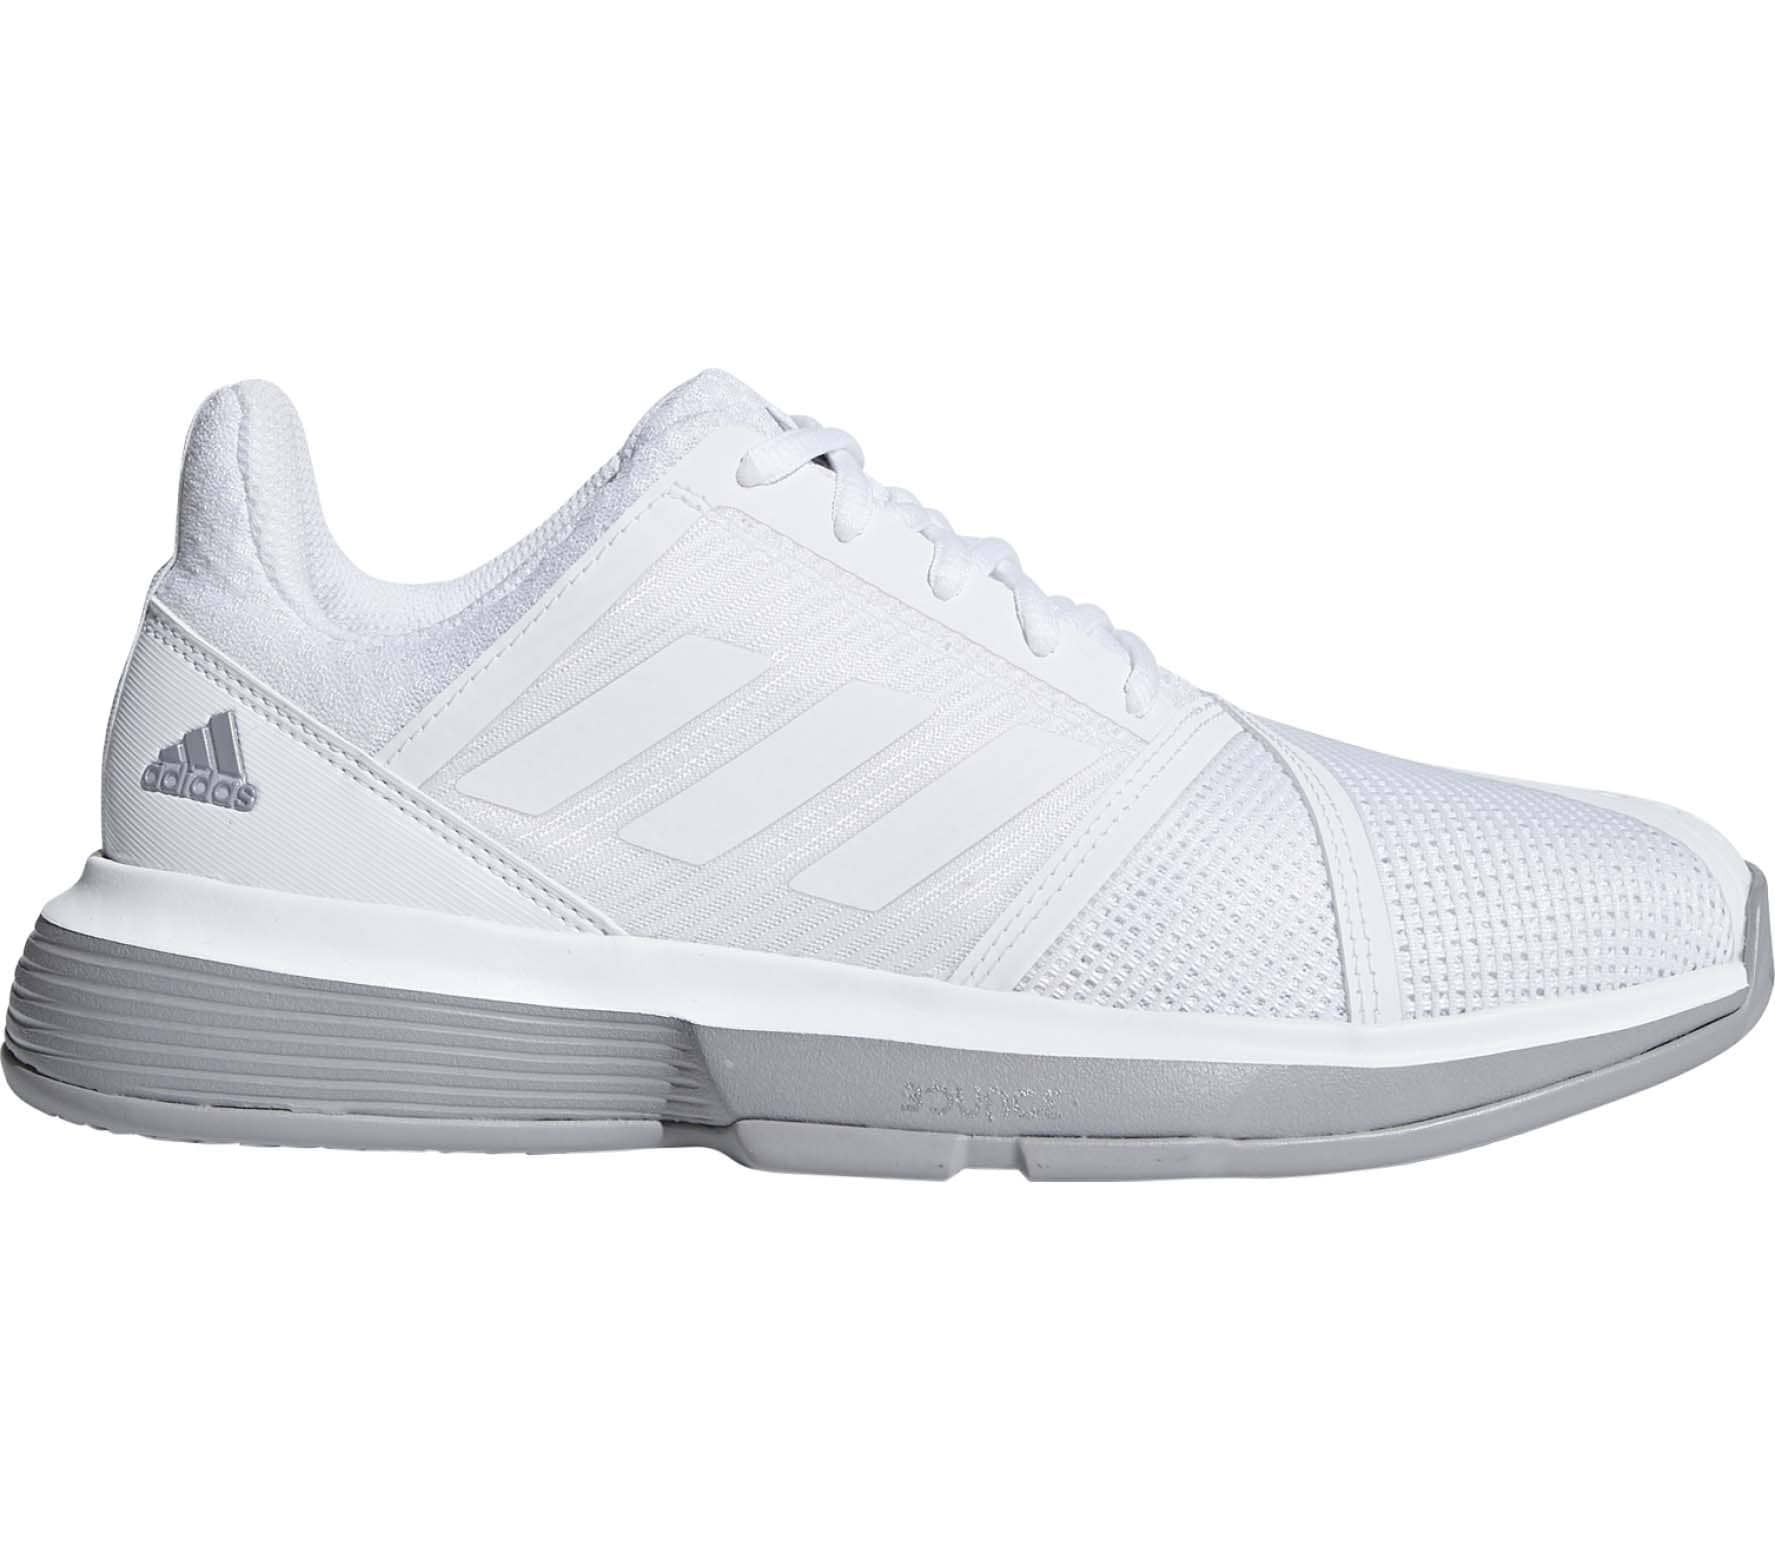 arrives 204de e9ac8 adidas Performance - Court Jam Bounce Femmes Chaussure de tennis (blanc)